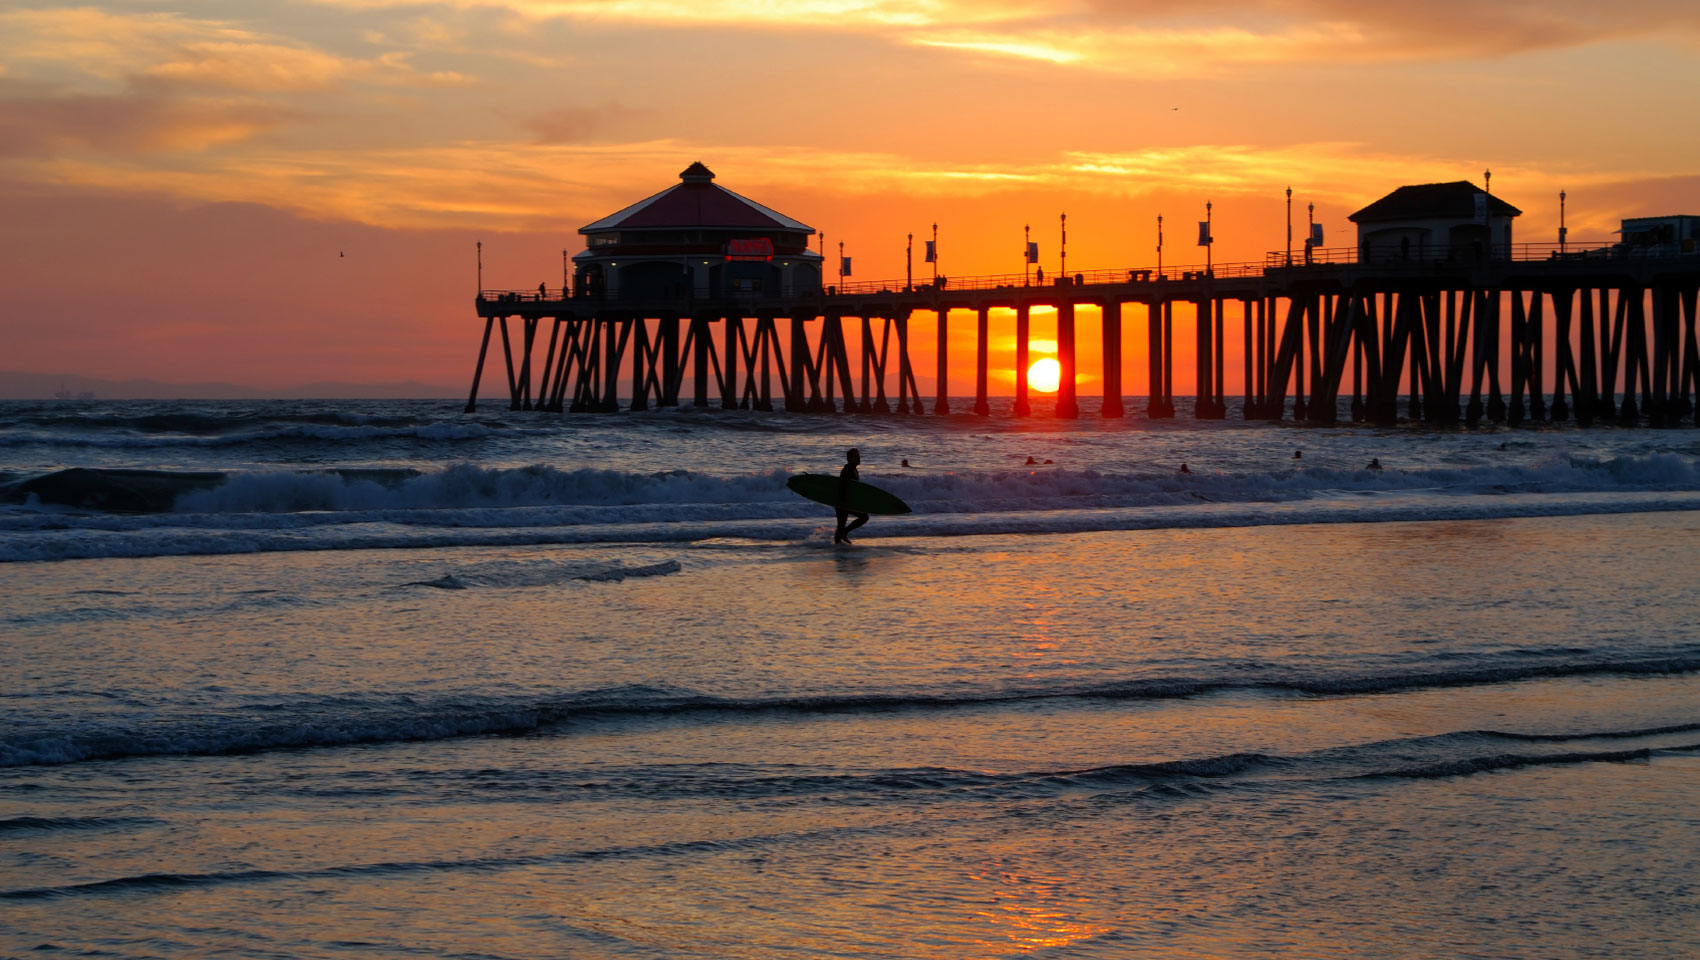 Huntington Beach Pier With A Surfer Walking At Sunset